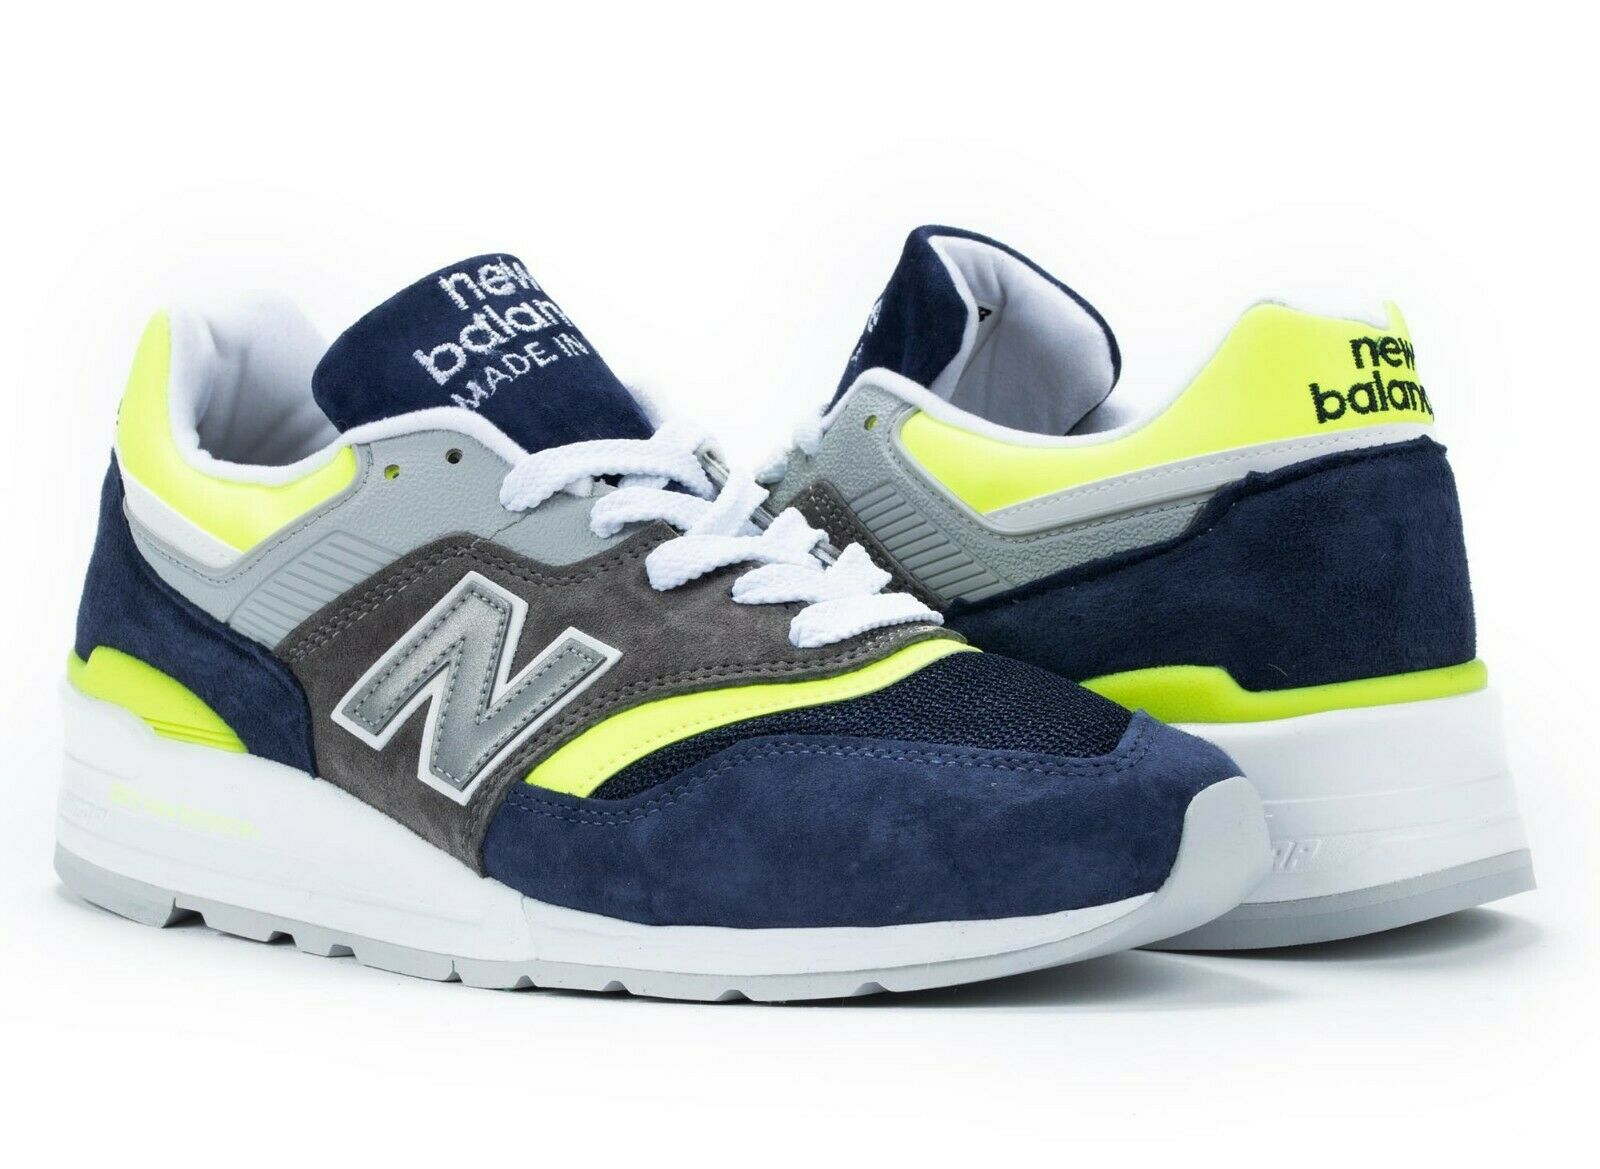 NEW BALANCE 997 MADE IN USA NAVY GREY YELLOW NEW